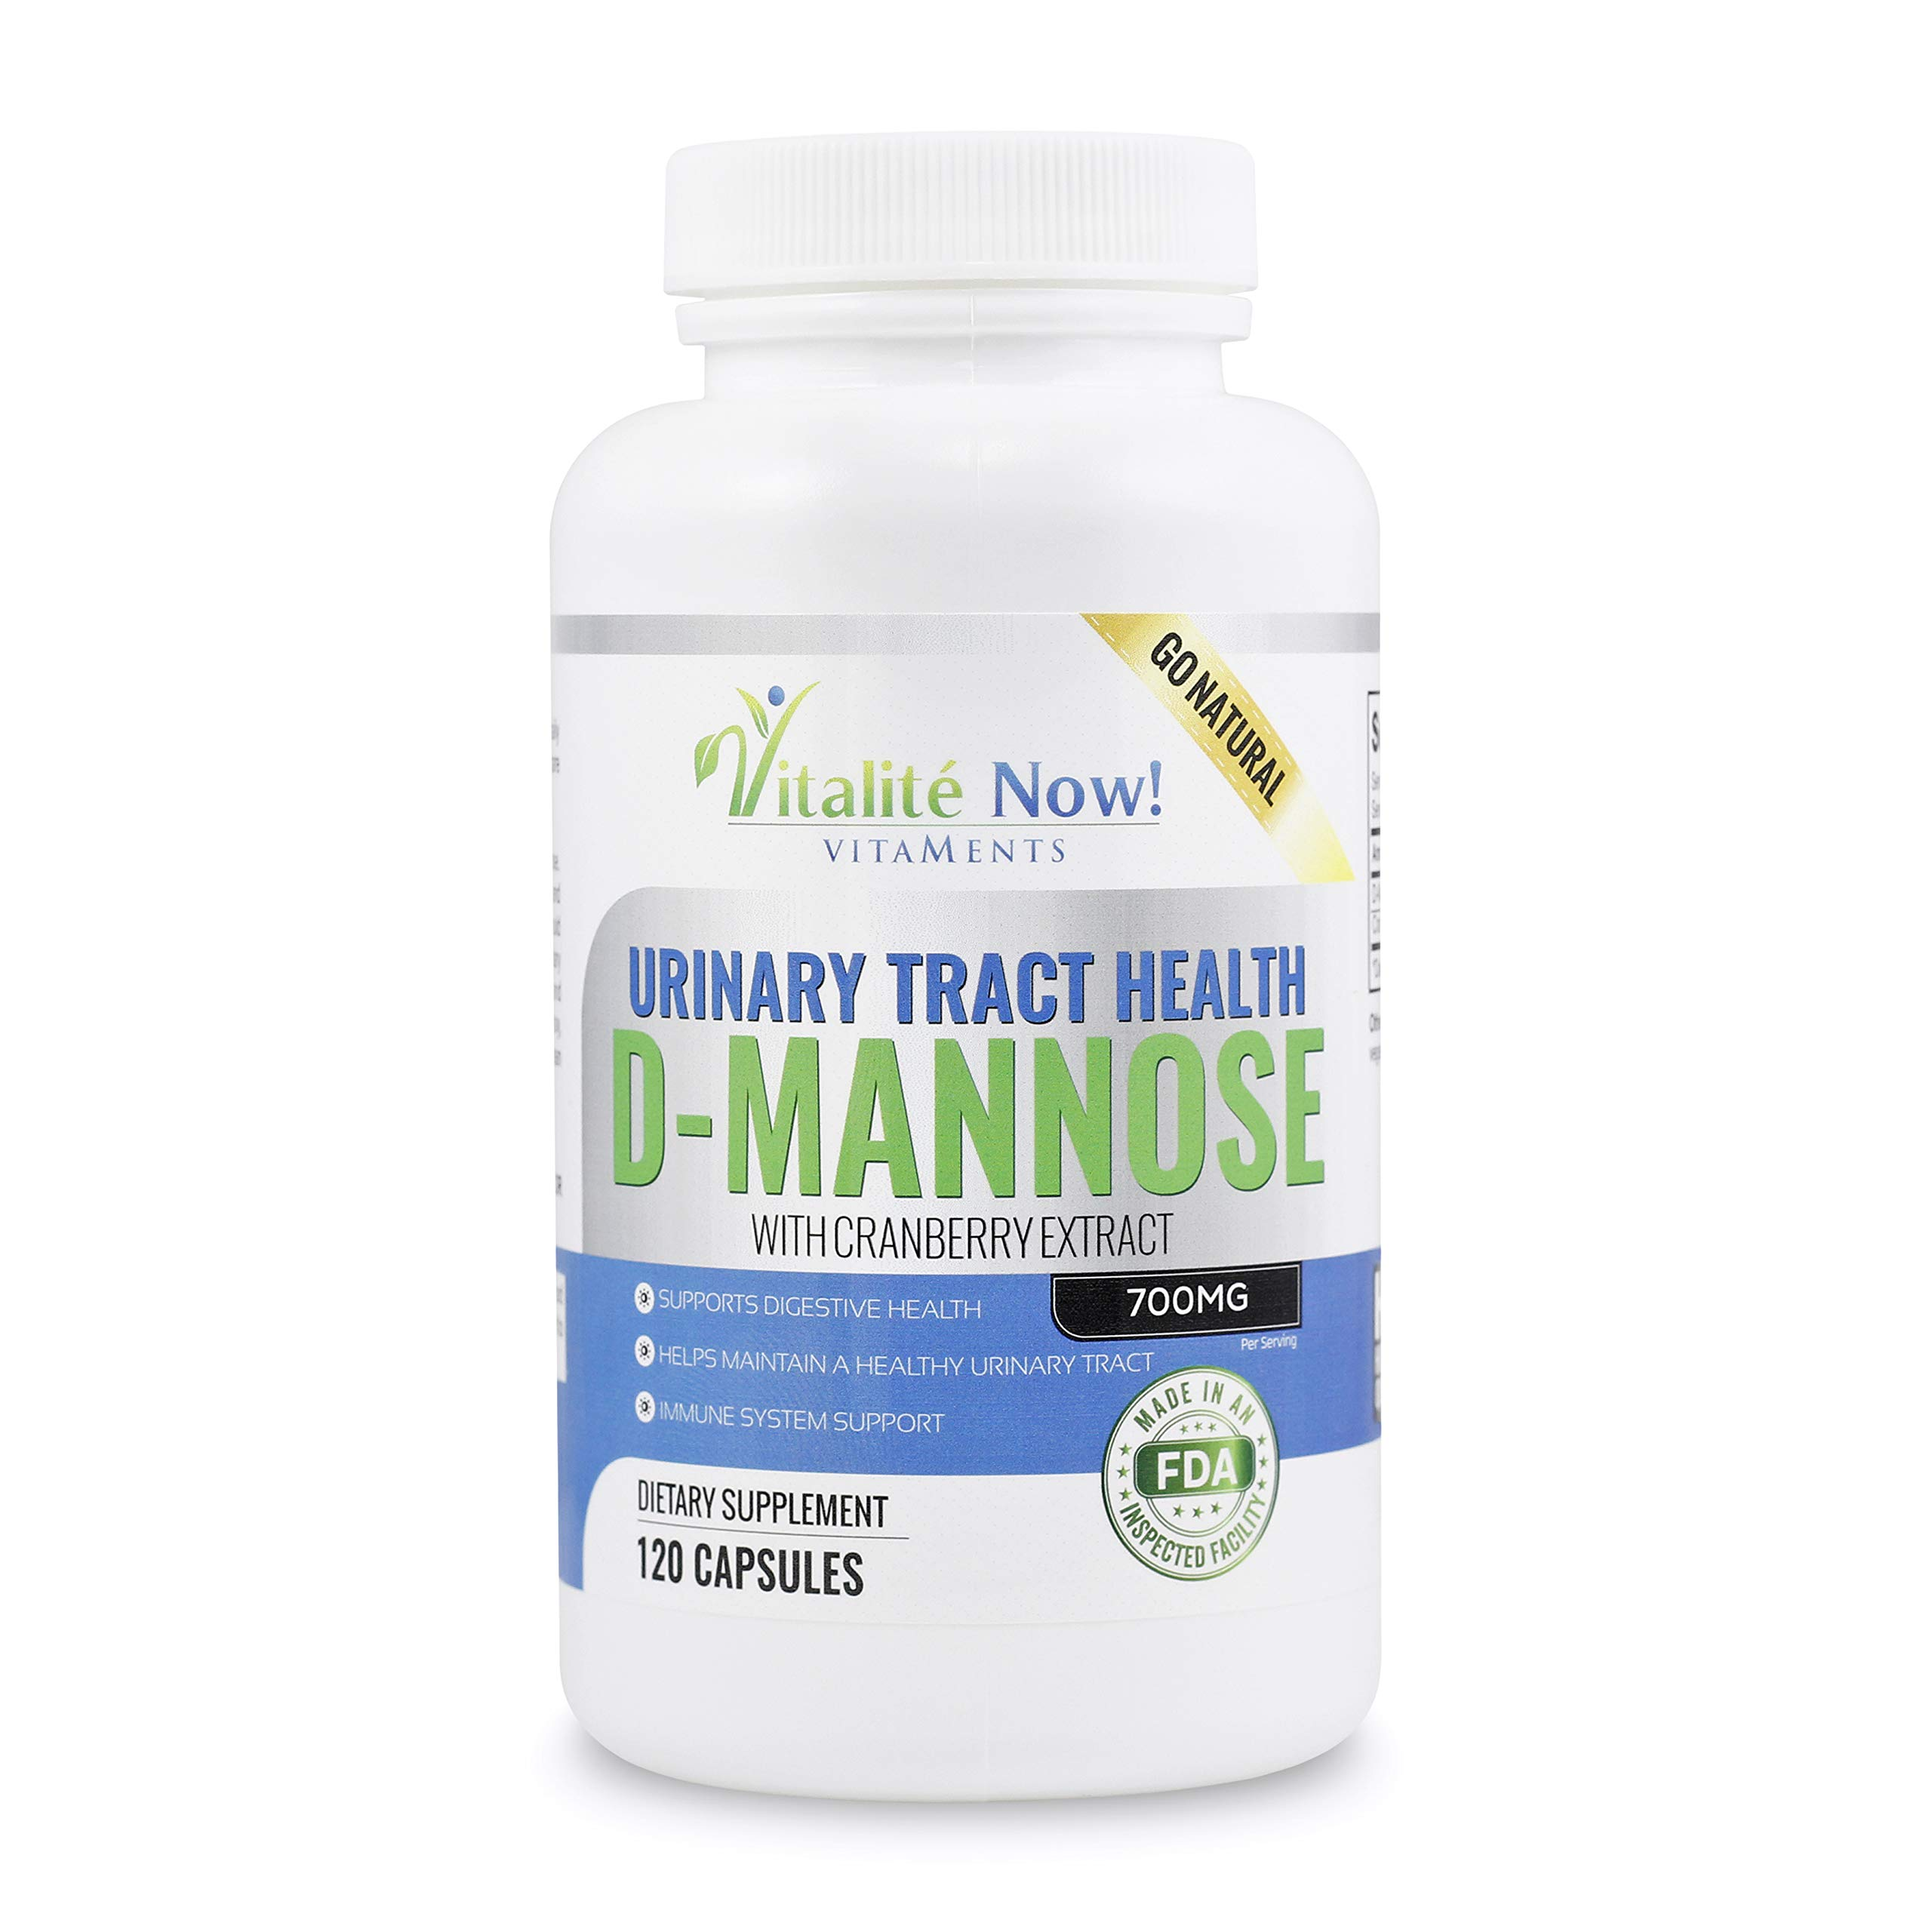 *New* High Strength Pure D-Mannose with Cranberry Extract for Natural Urinary Tract Infections and UTI Support - Digestive Health - Immune System Support - 700mg - Non-GMO - 120 Pills by Vitalité Now!